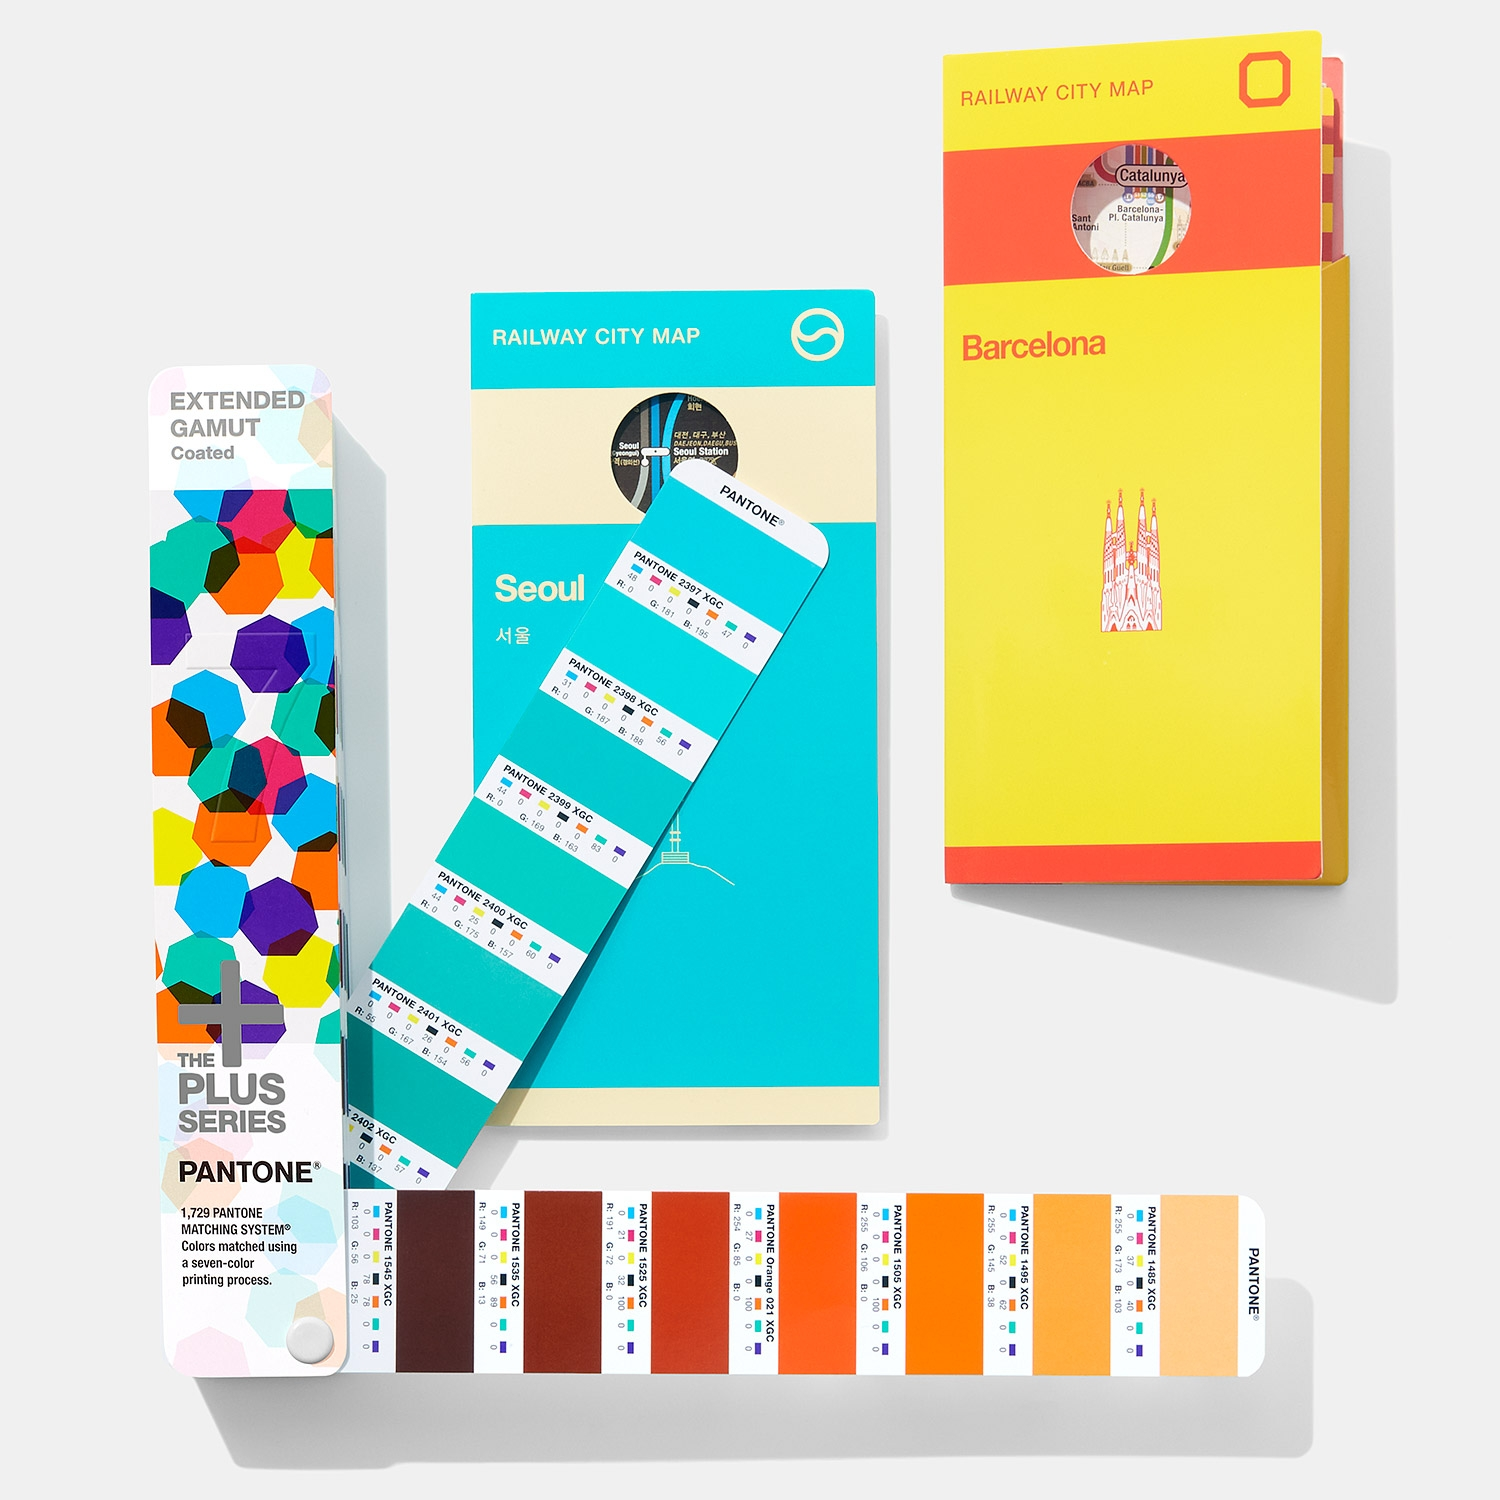 pantone color cue 2 manual